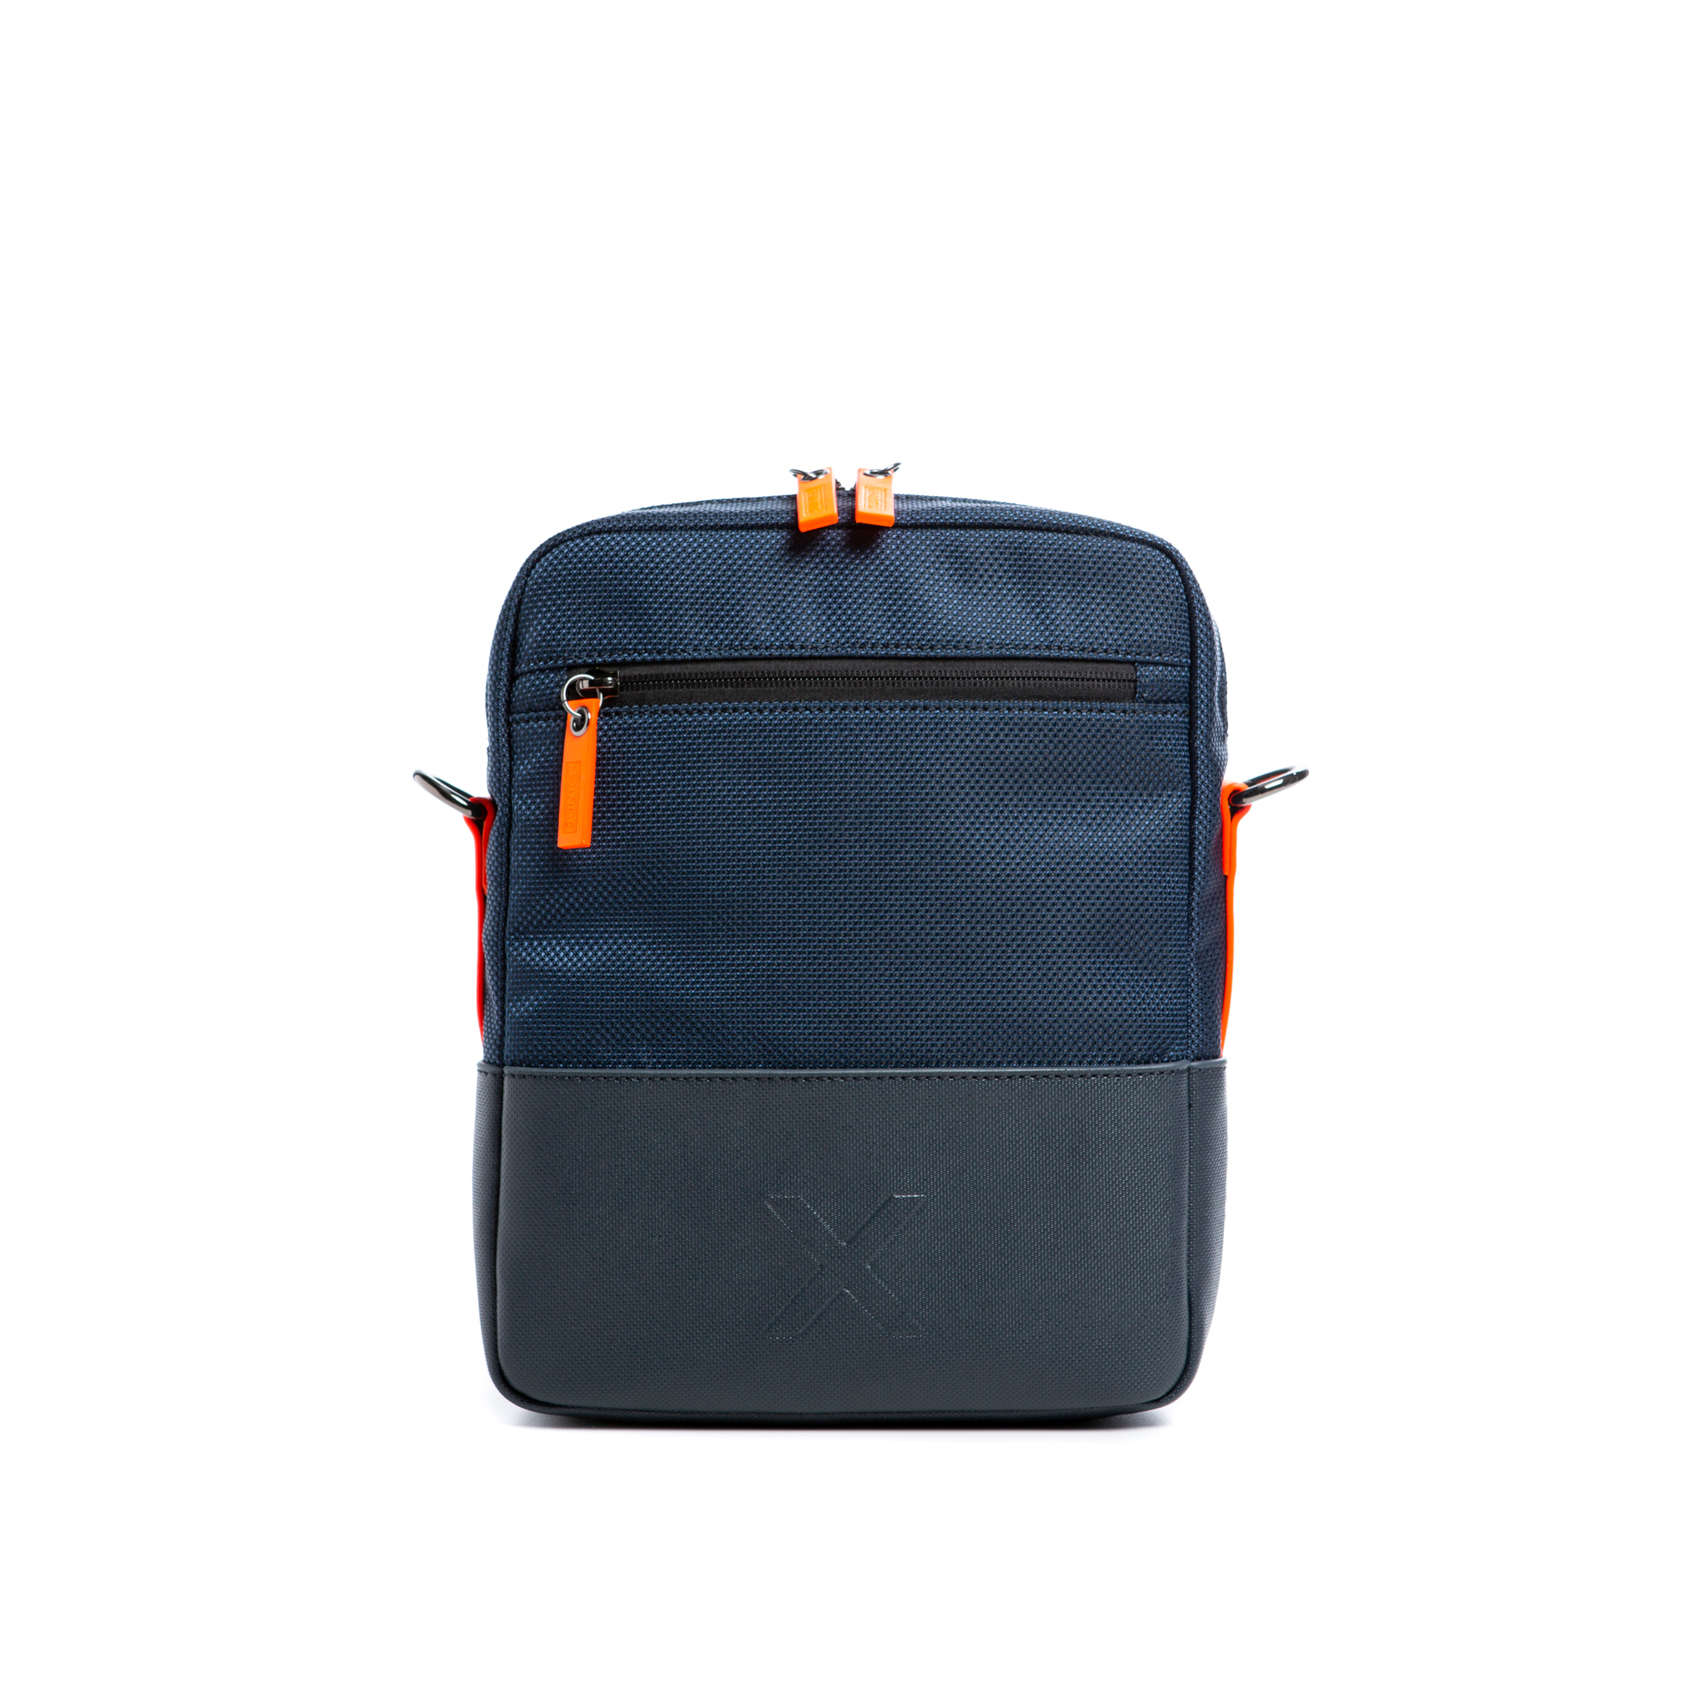 CROSSBODY CITY BUSINESS NAVY